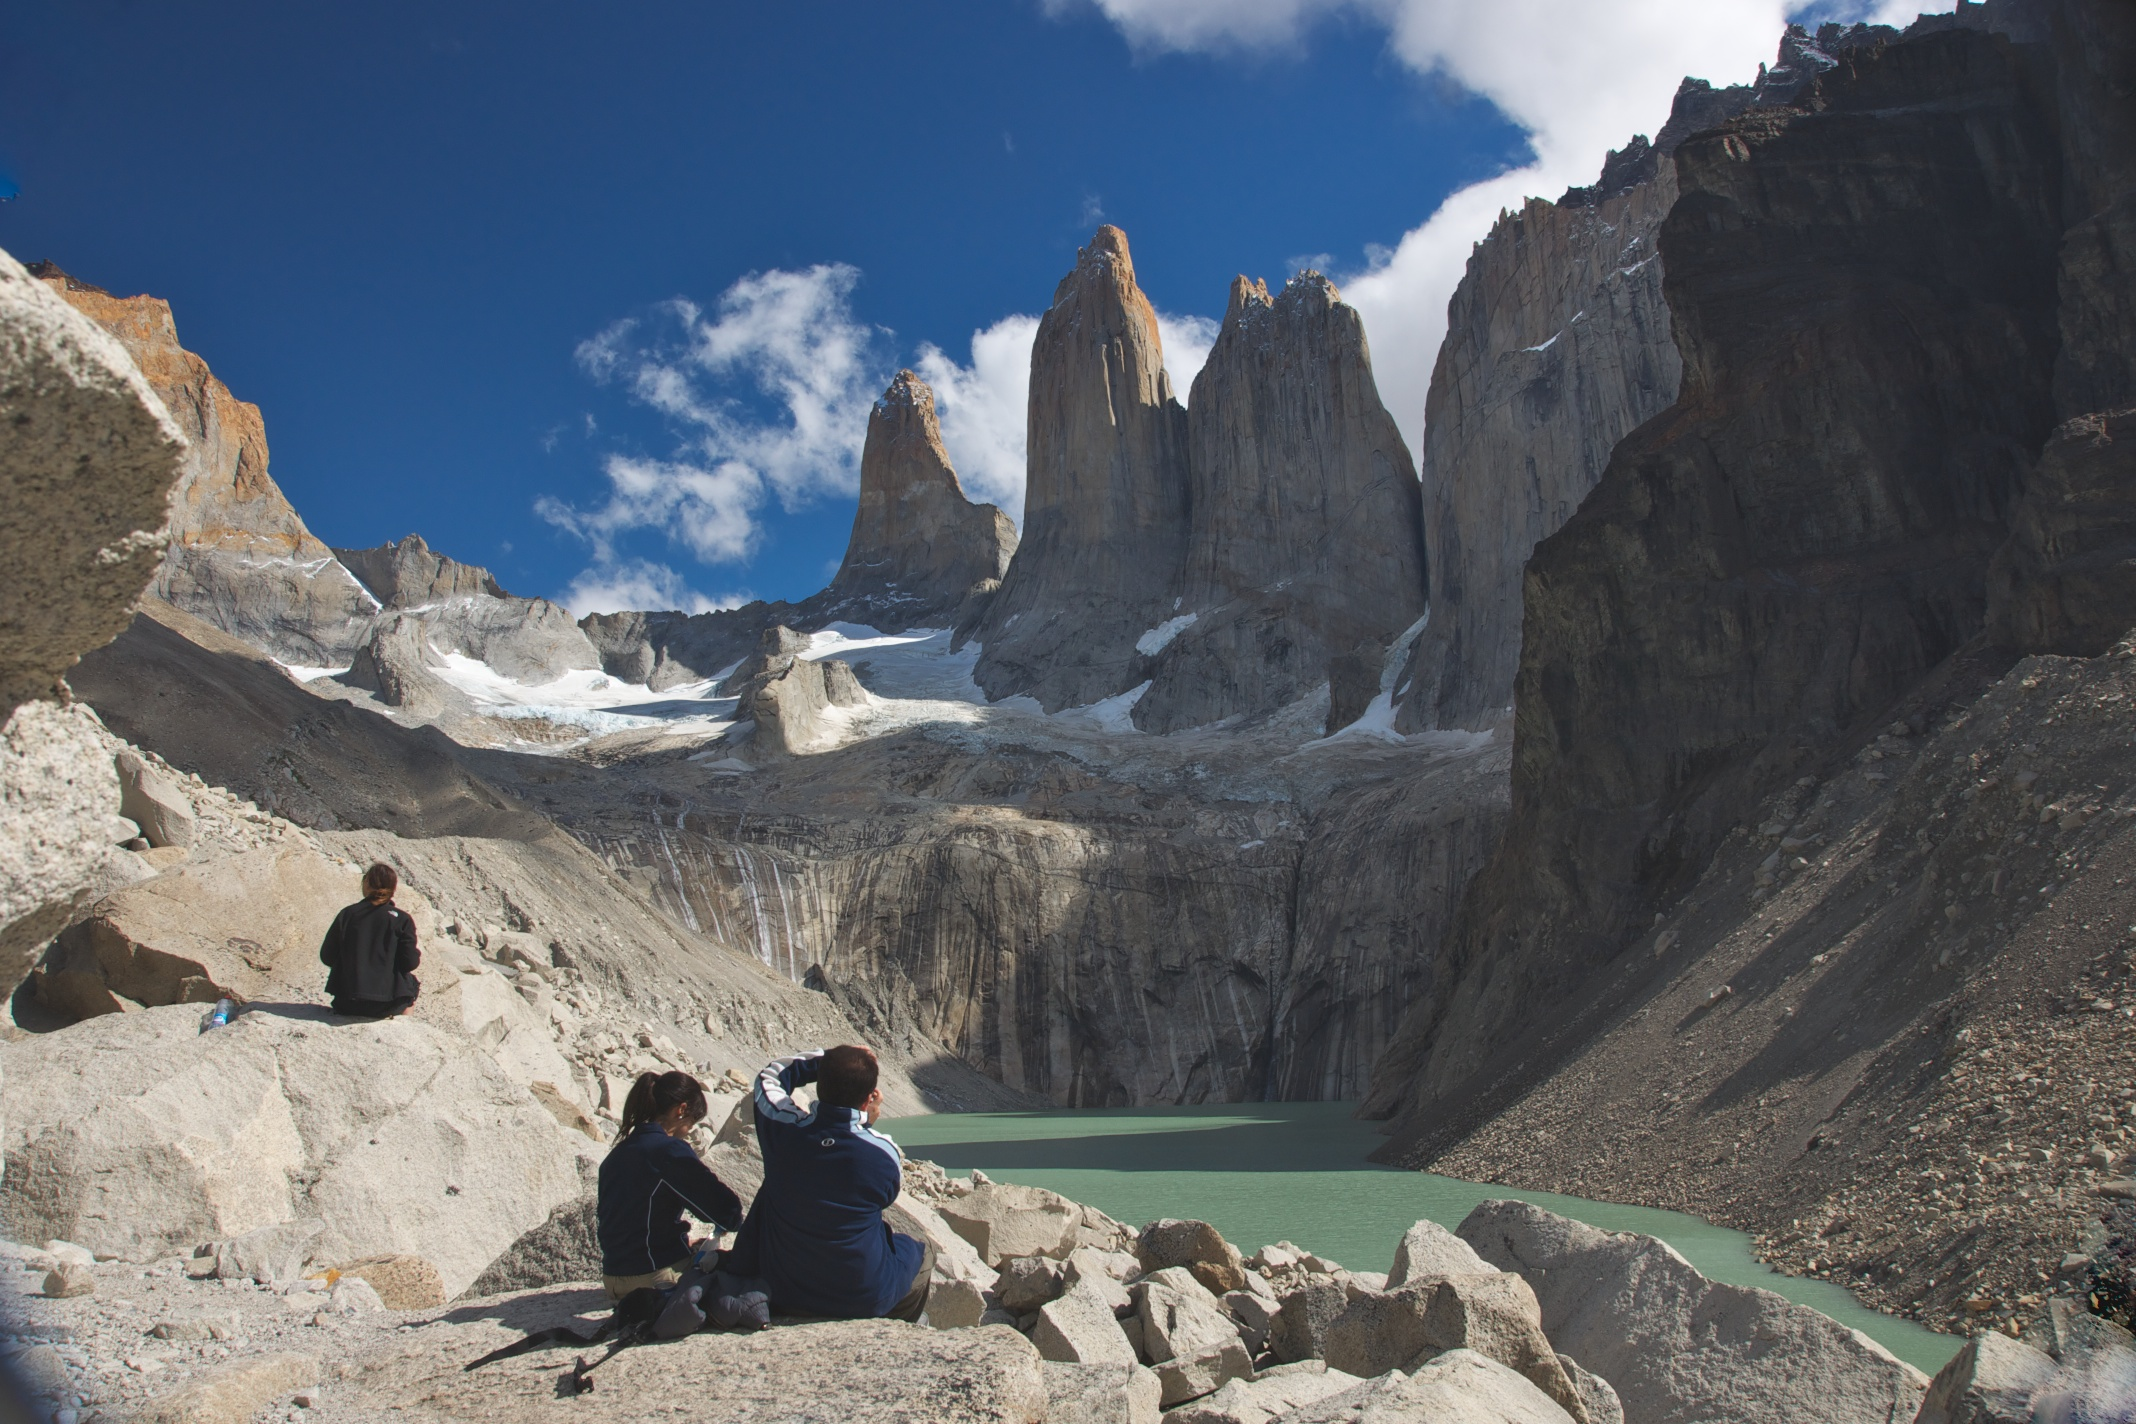 patagonia travel argentina lonely planet - HD1200×800